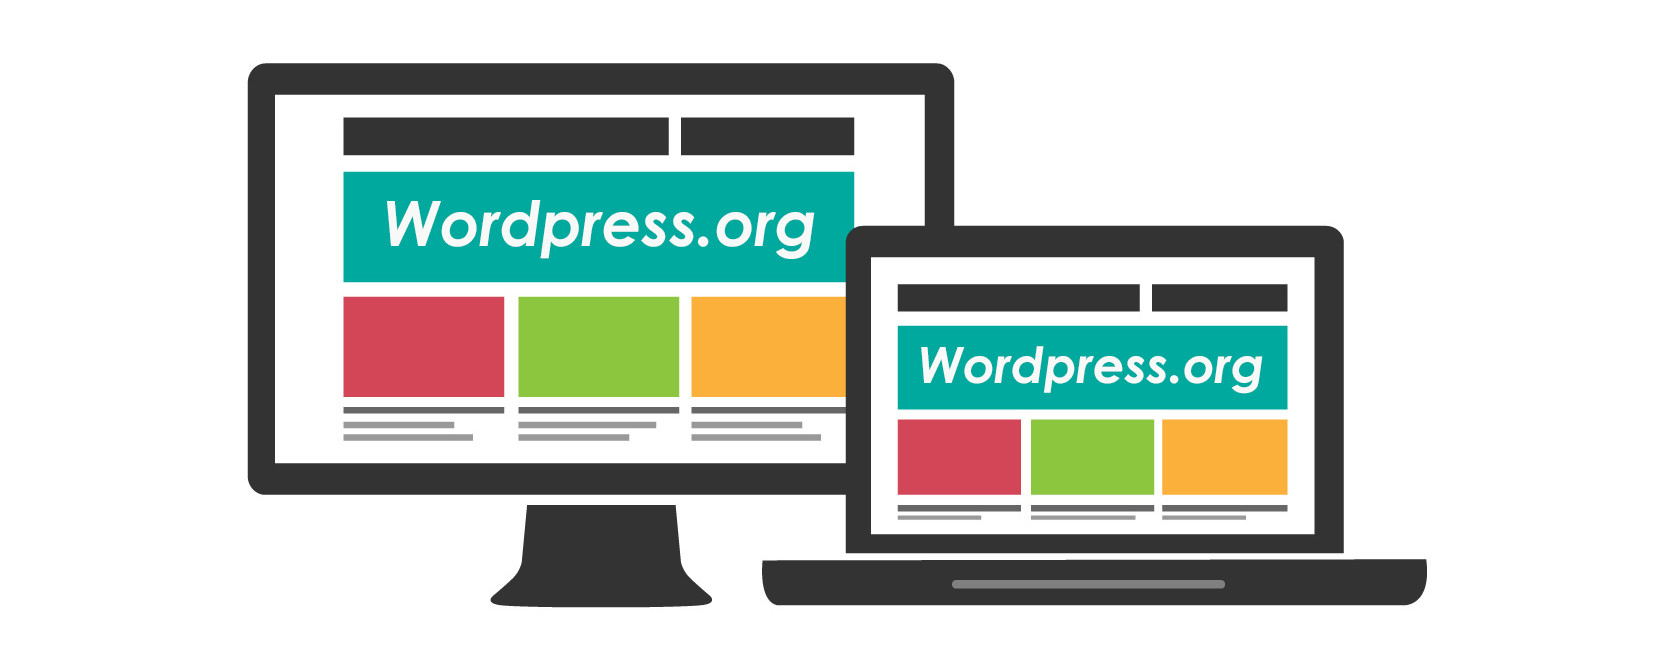 recomendamos wordpress.org business